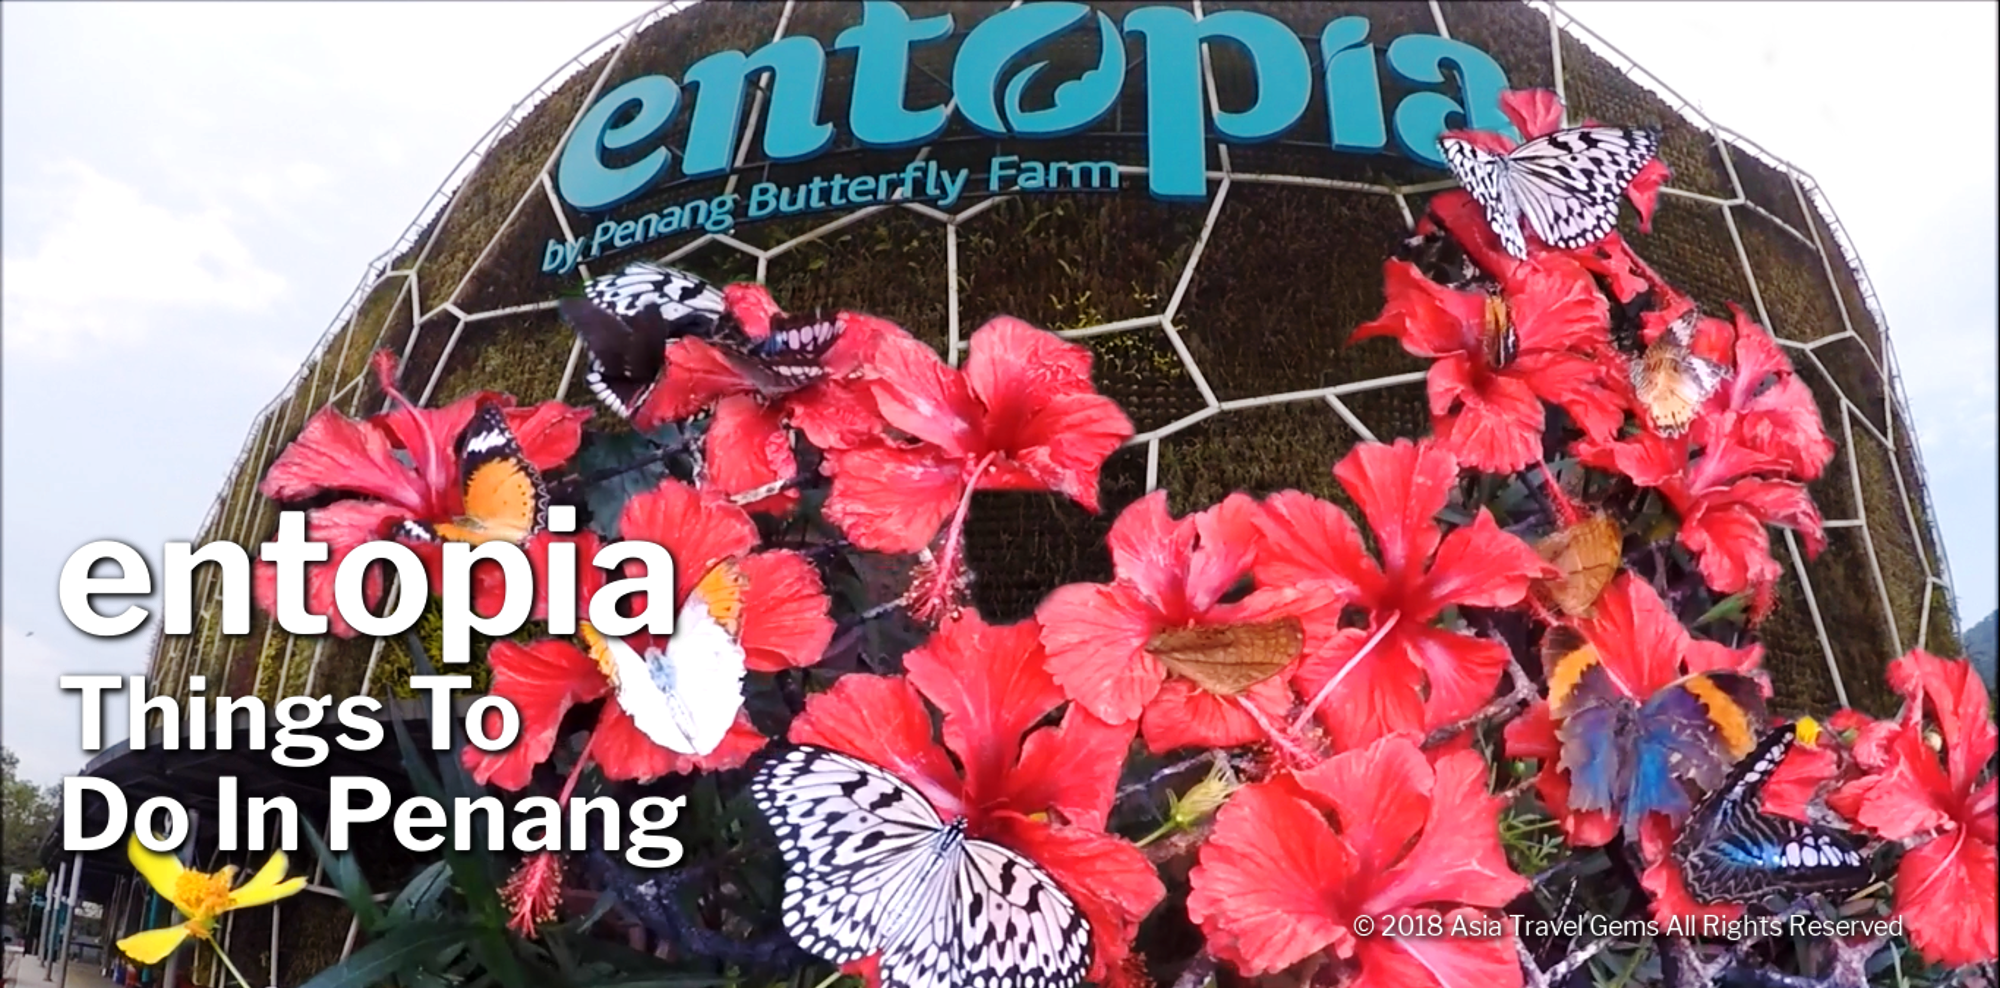 Things To Do In Penang - Entopia Butterfly Farm - header